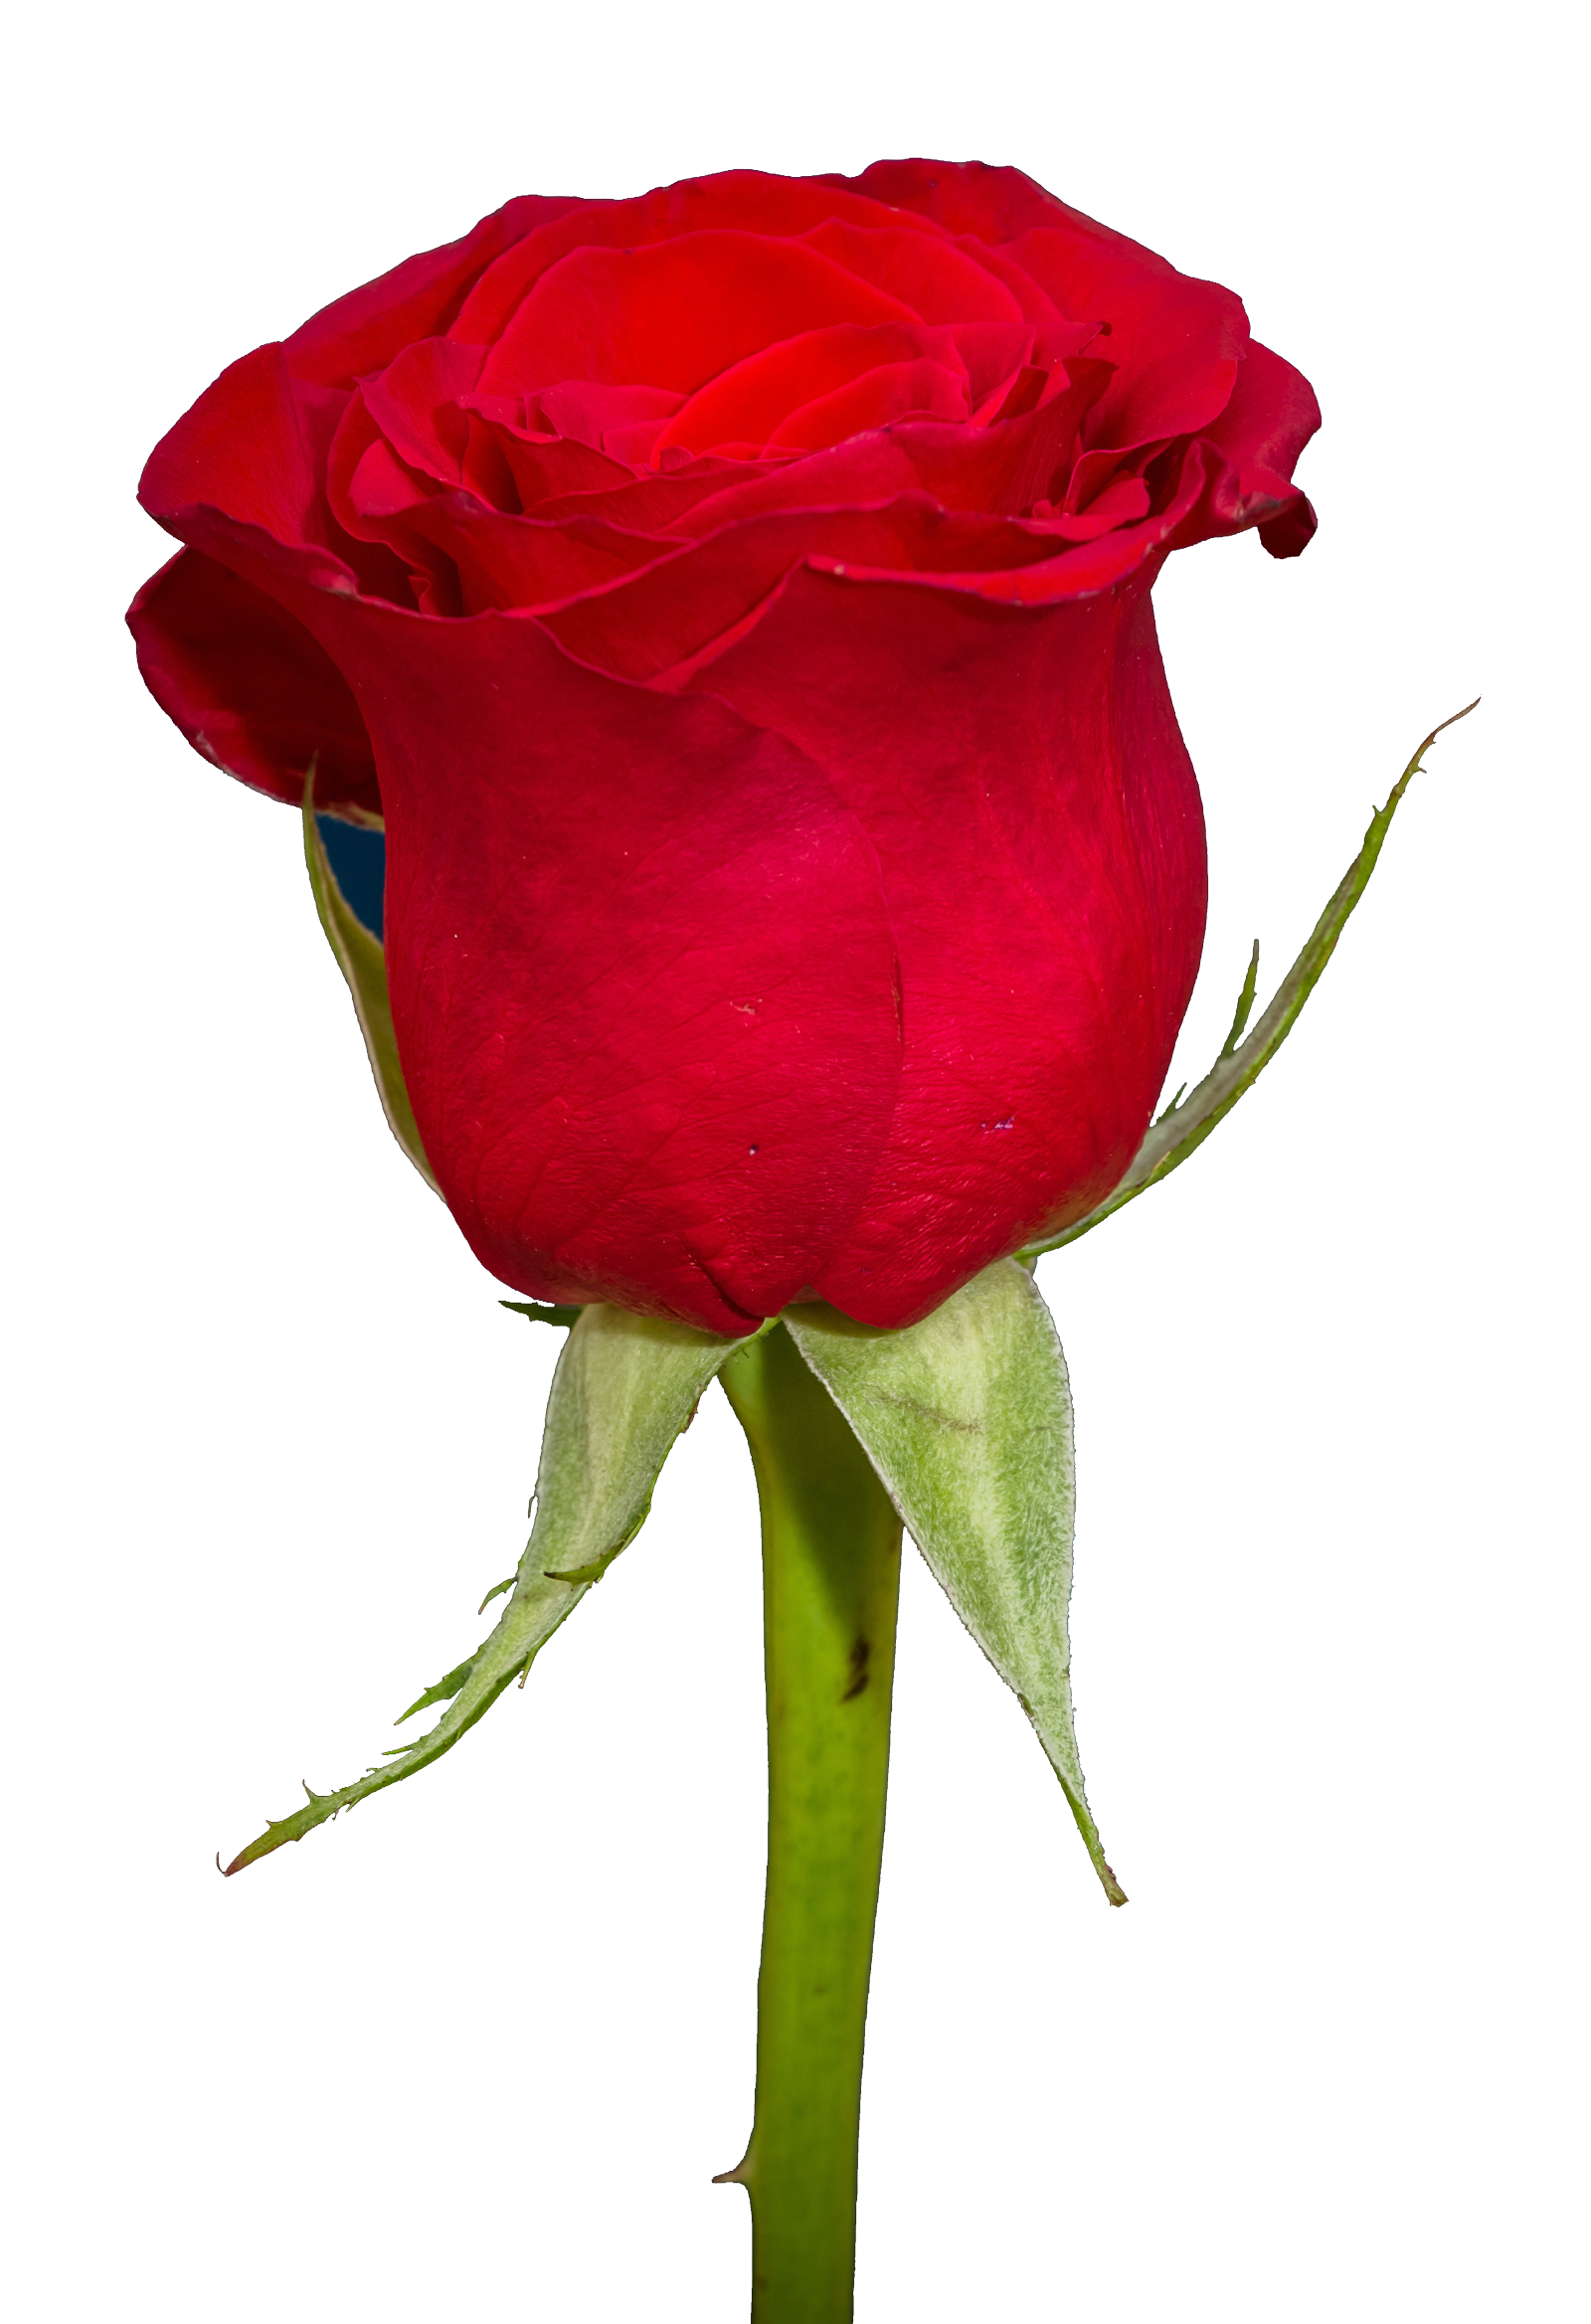 Rose PNG Transparent Image - Rose PNG